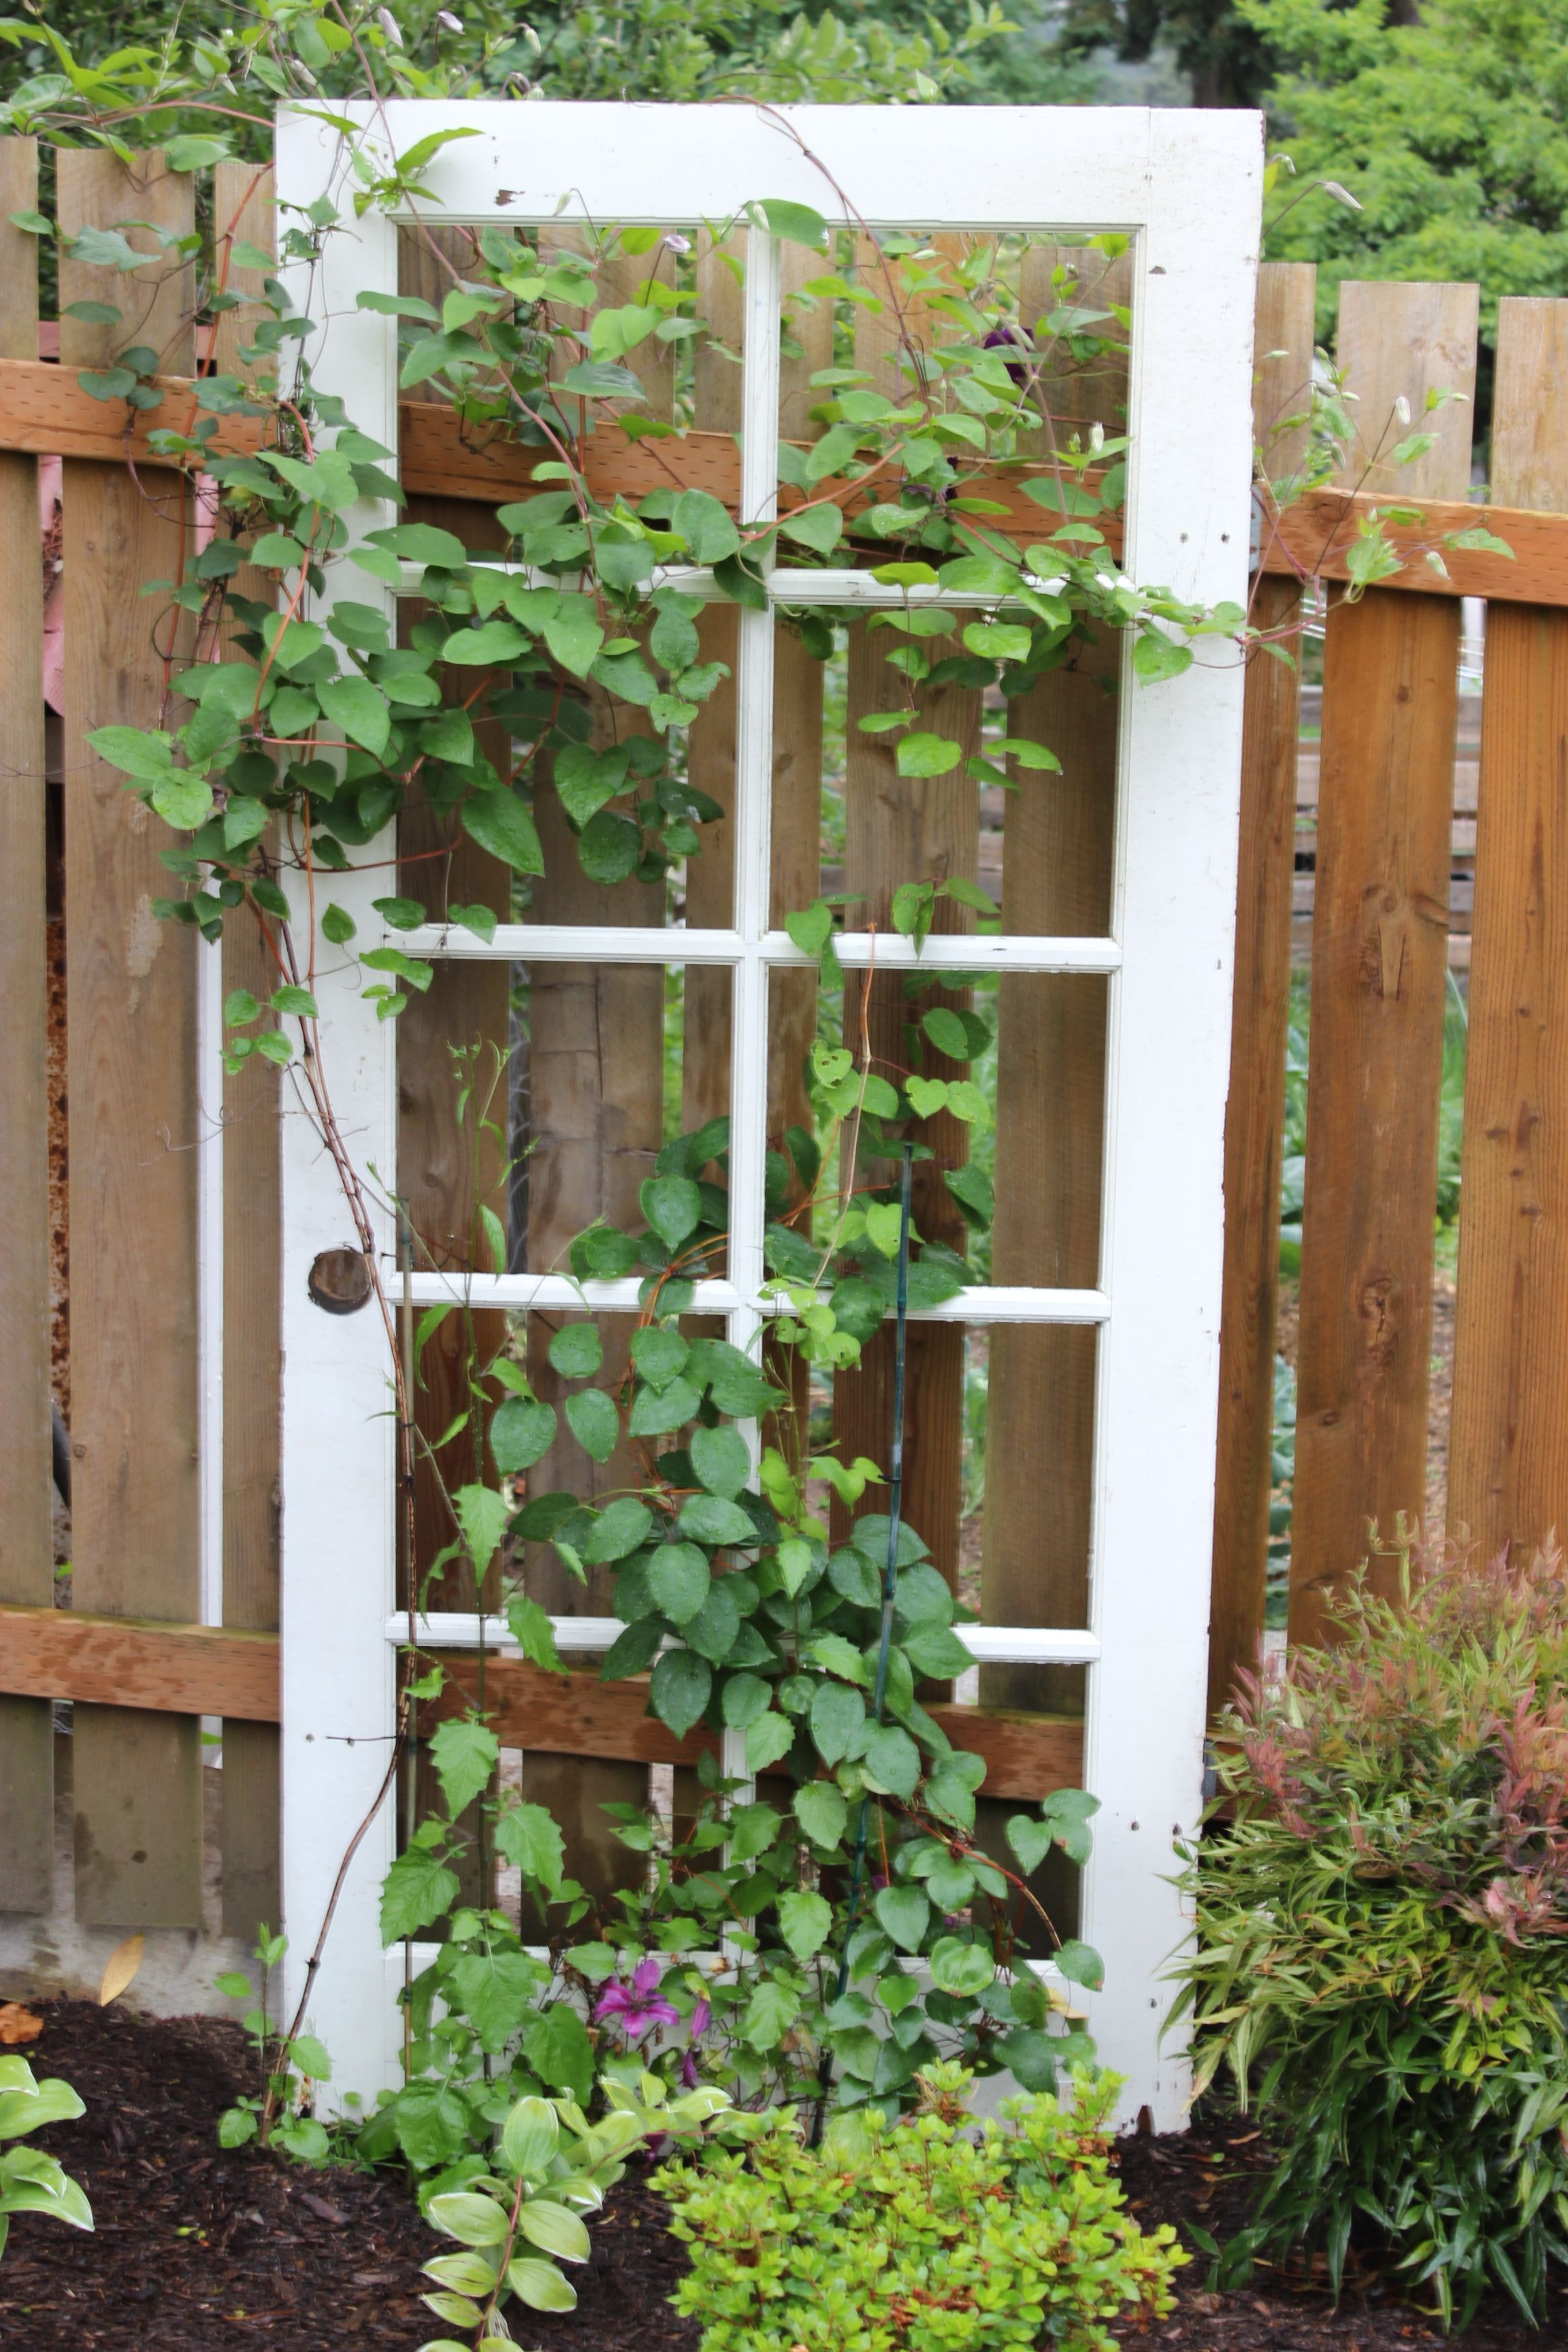 trellis with clematis flowers. Needed 3 doors to make 2 perfect doors for another application. I used the remnant door as a trellis.I absolutely love the repurpose and look of it.